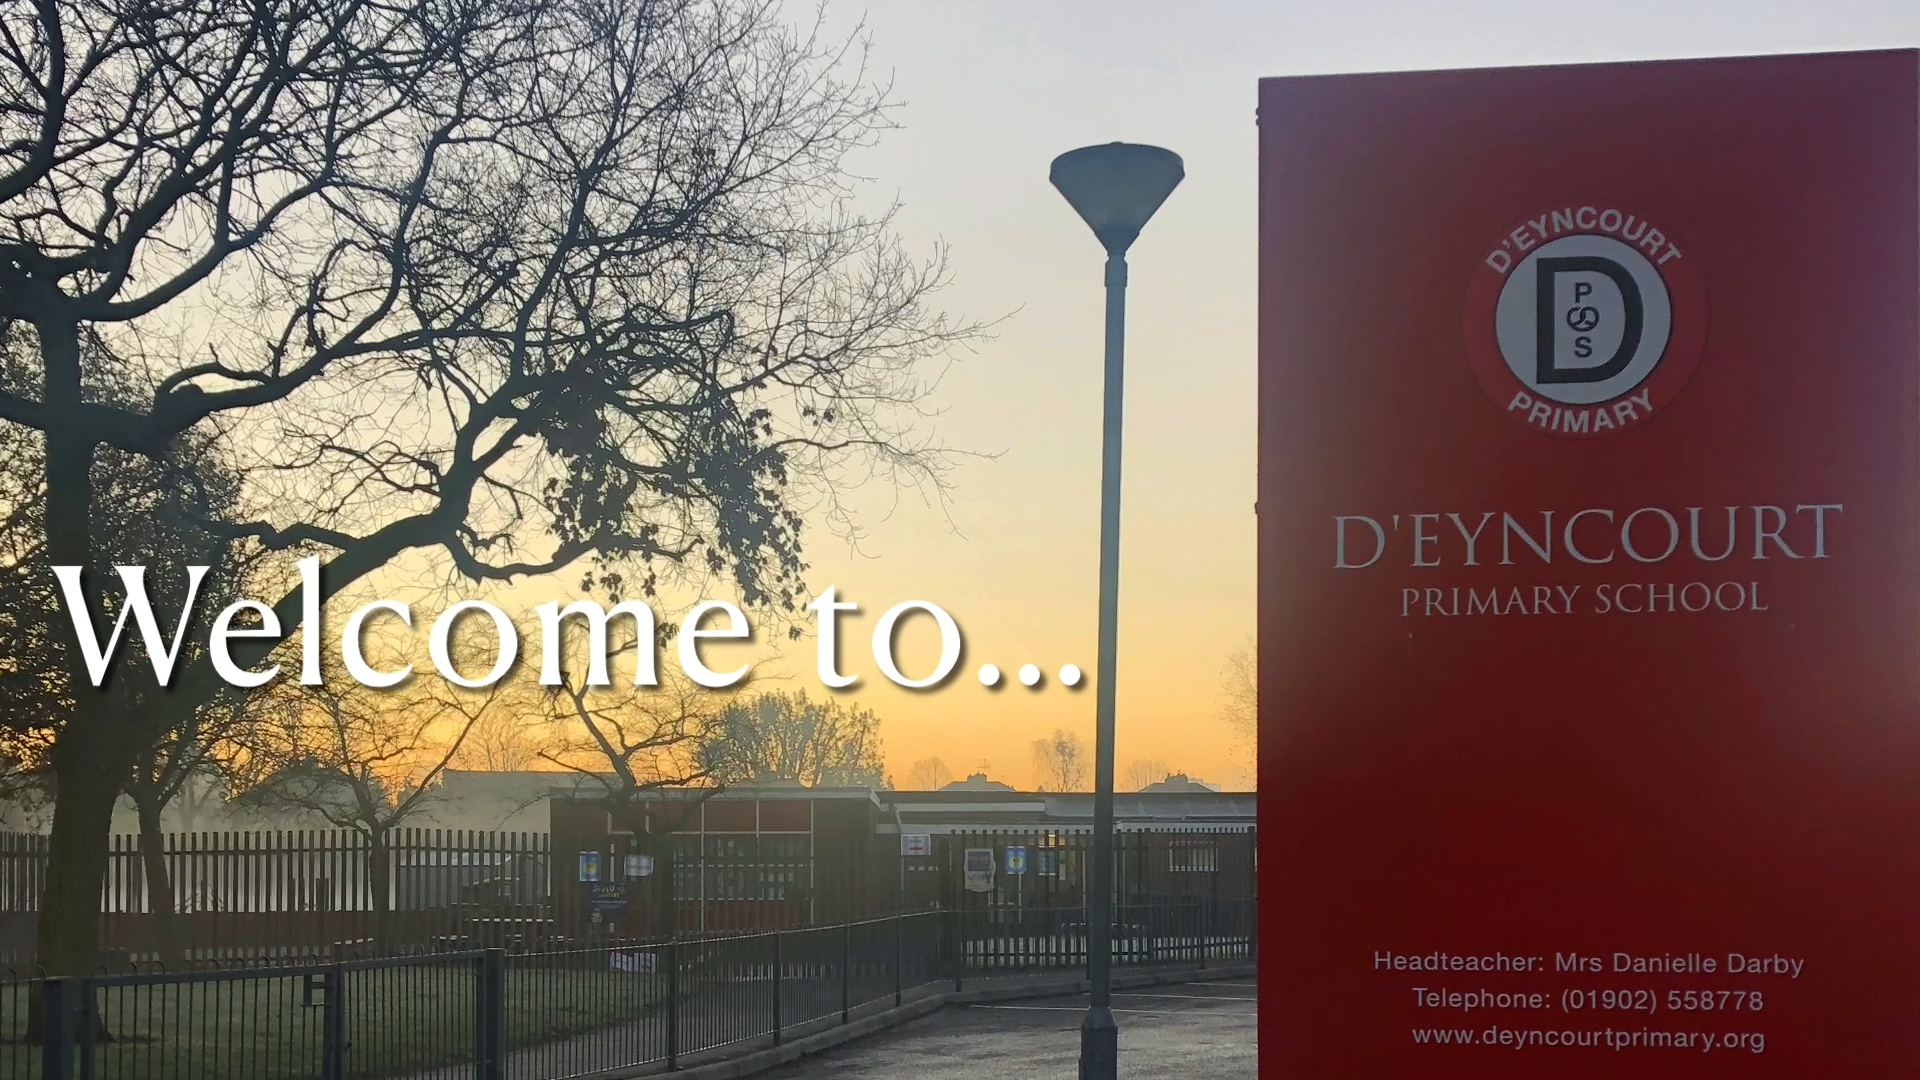 Welcome to D'Eyncourt Primary School